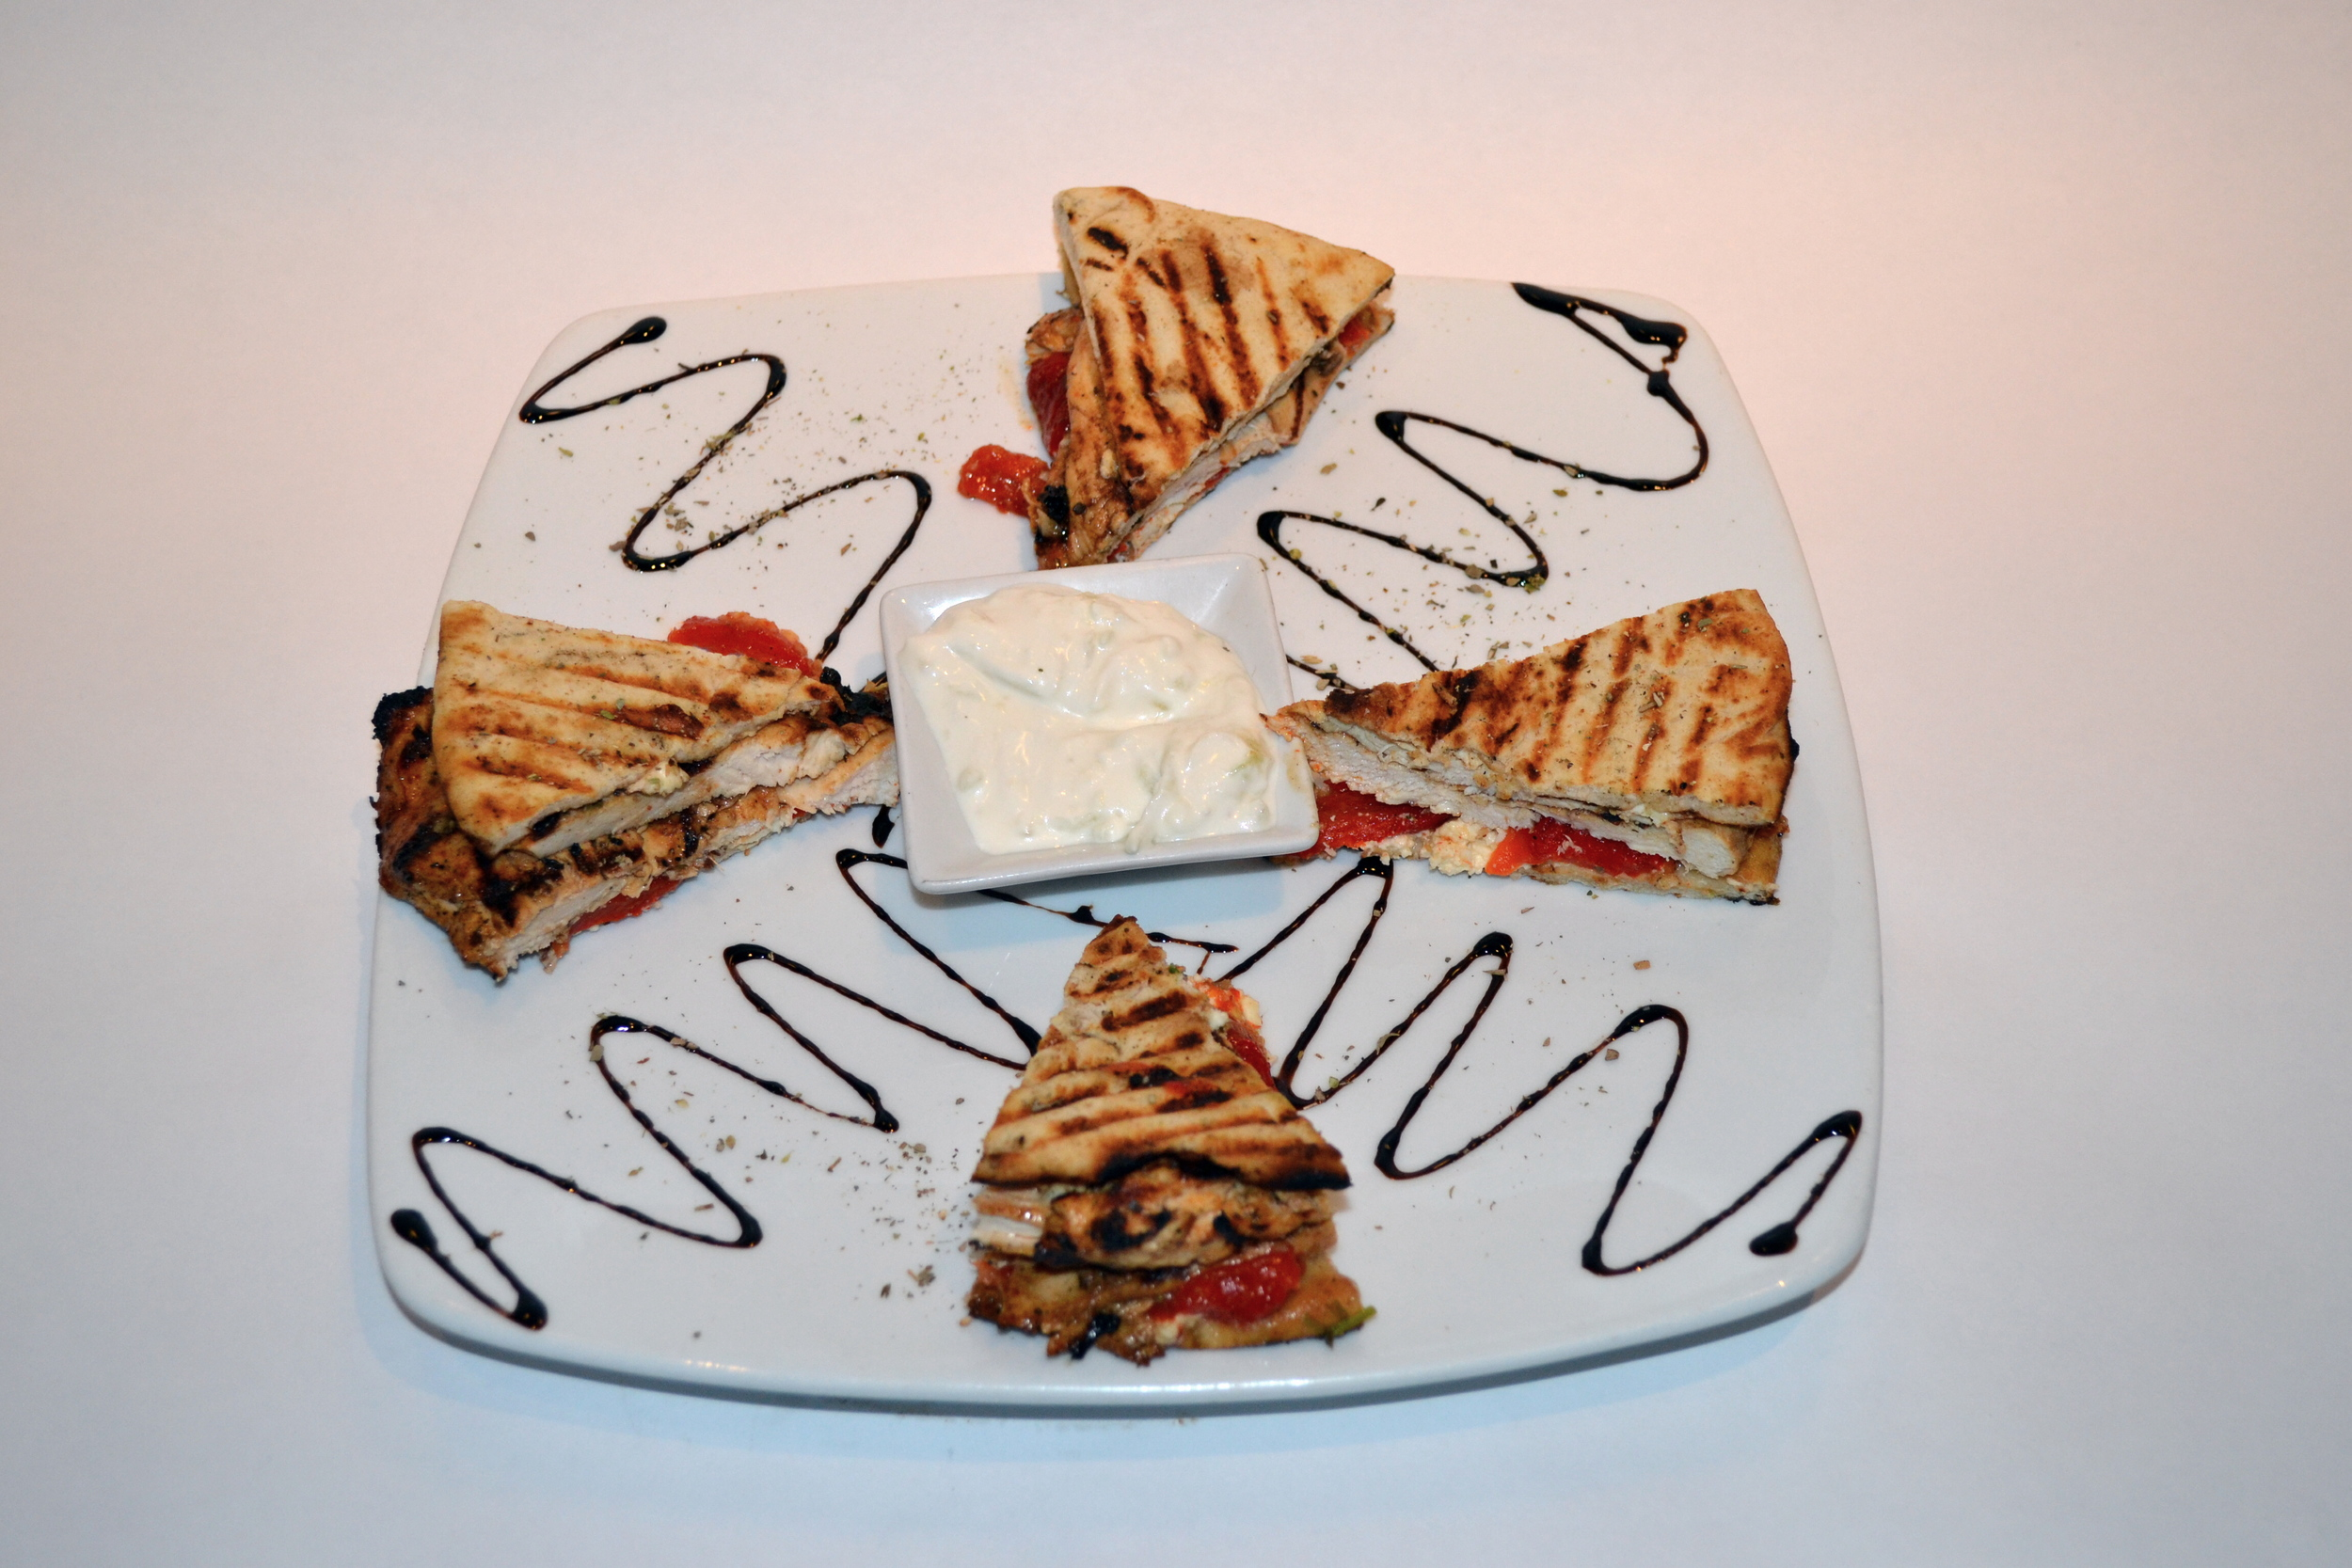 Neraki has a Georgie lunch special that is savory and tasteful in all the right ways.